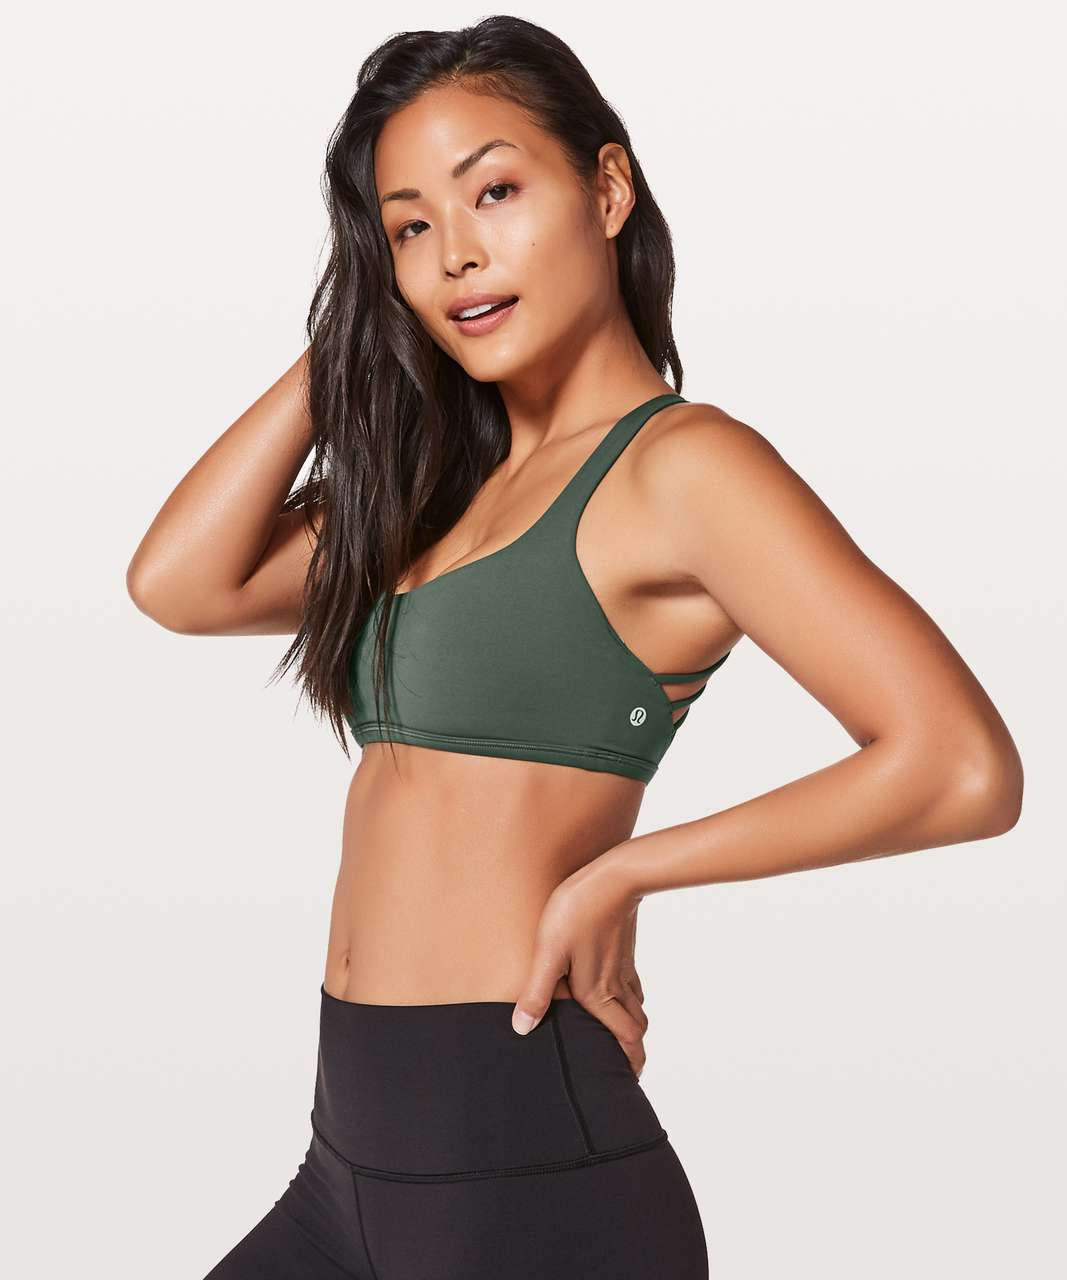 Lululemon Free To Be Bra (Wild) - Dark Forest (First Release)